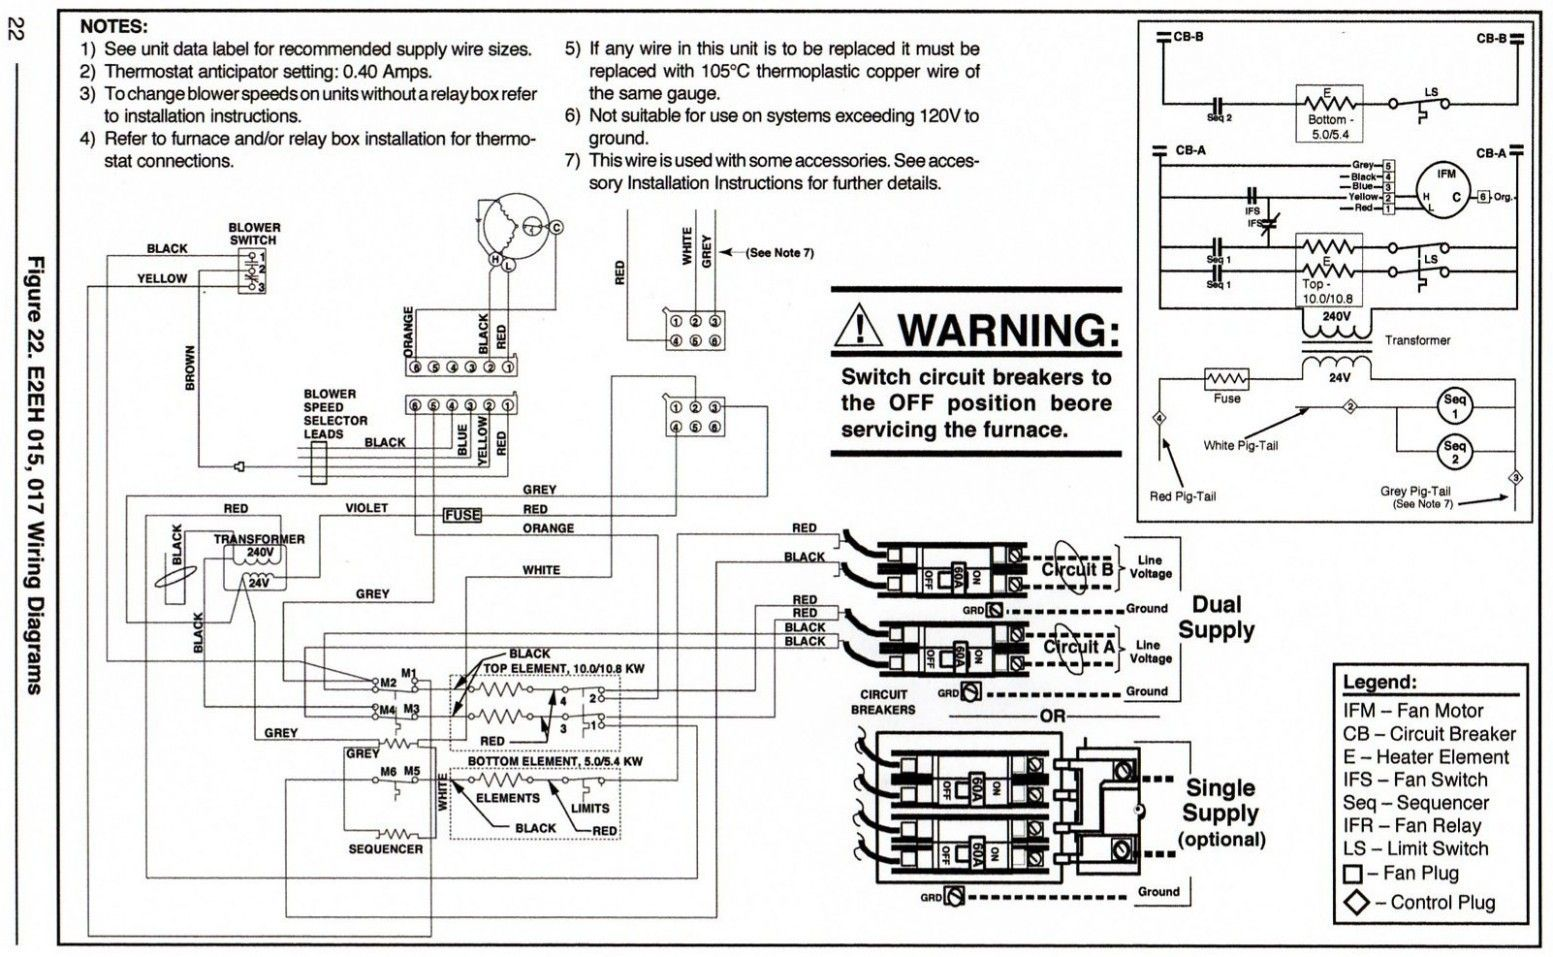 Nordyne E2eb 015ha Wiring Diagram Intertherm Sequencer ... on